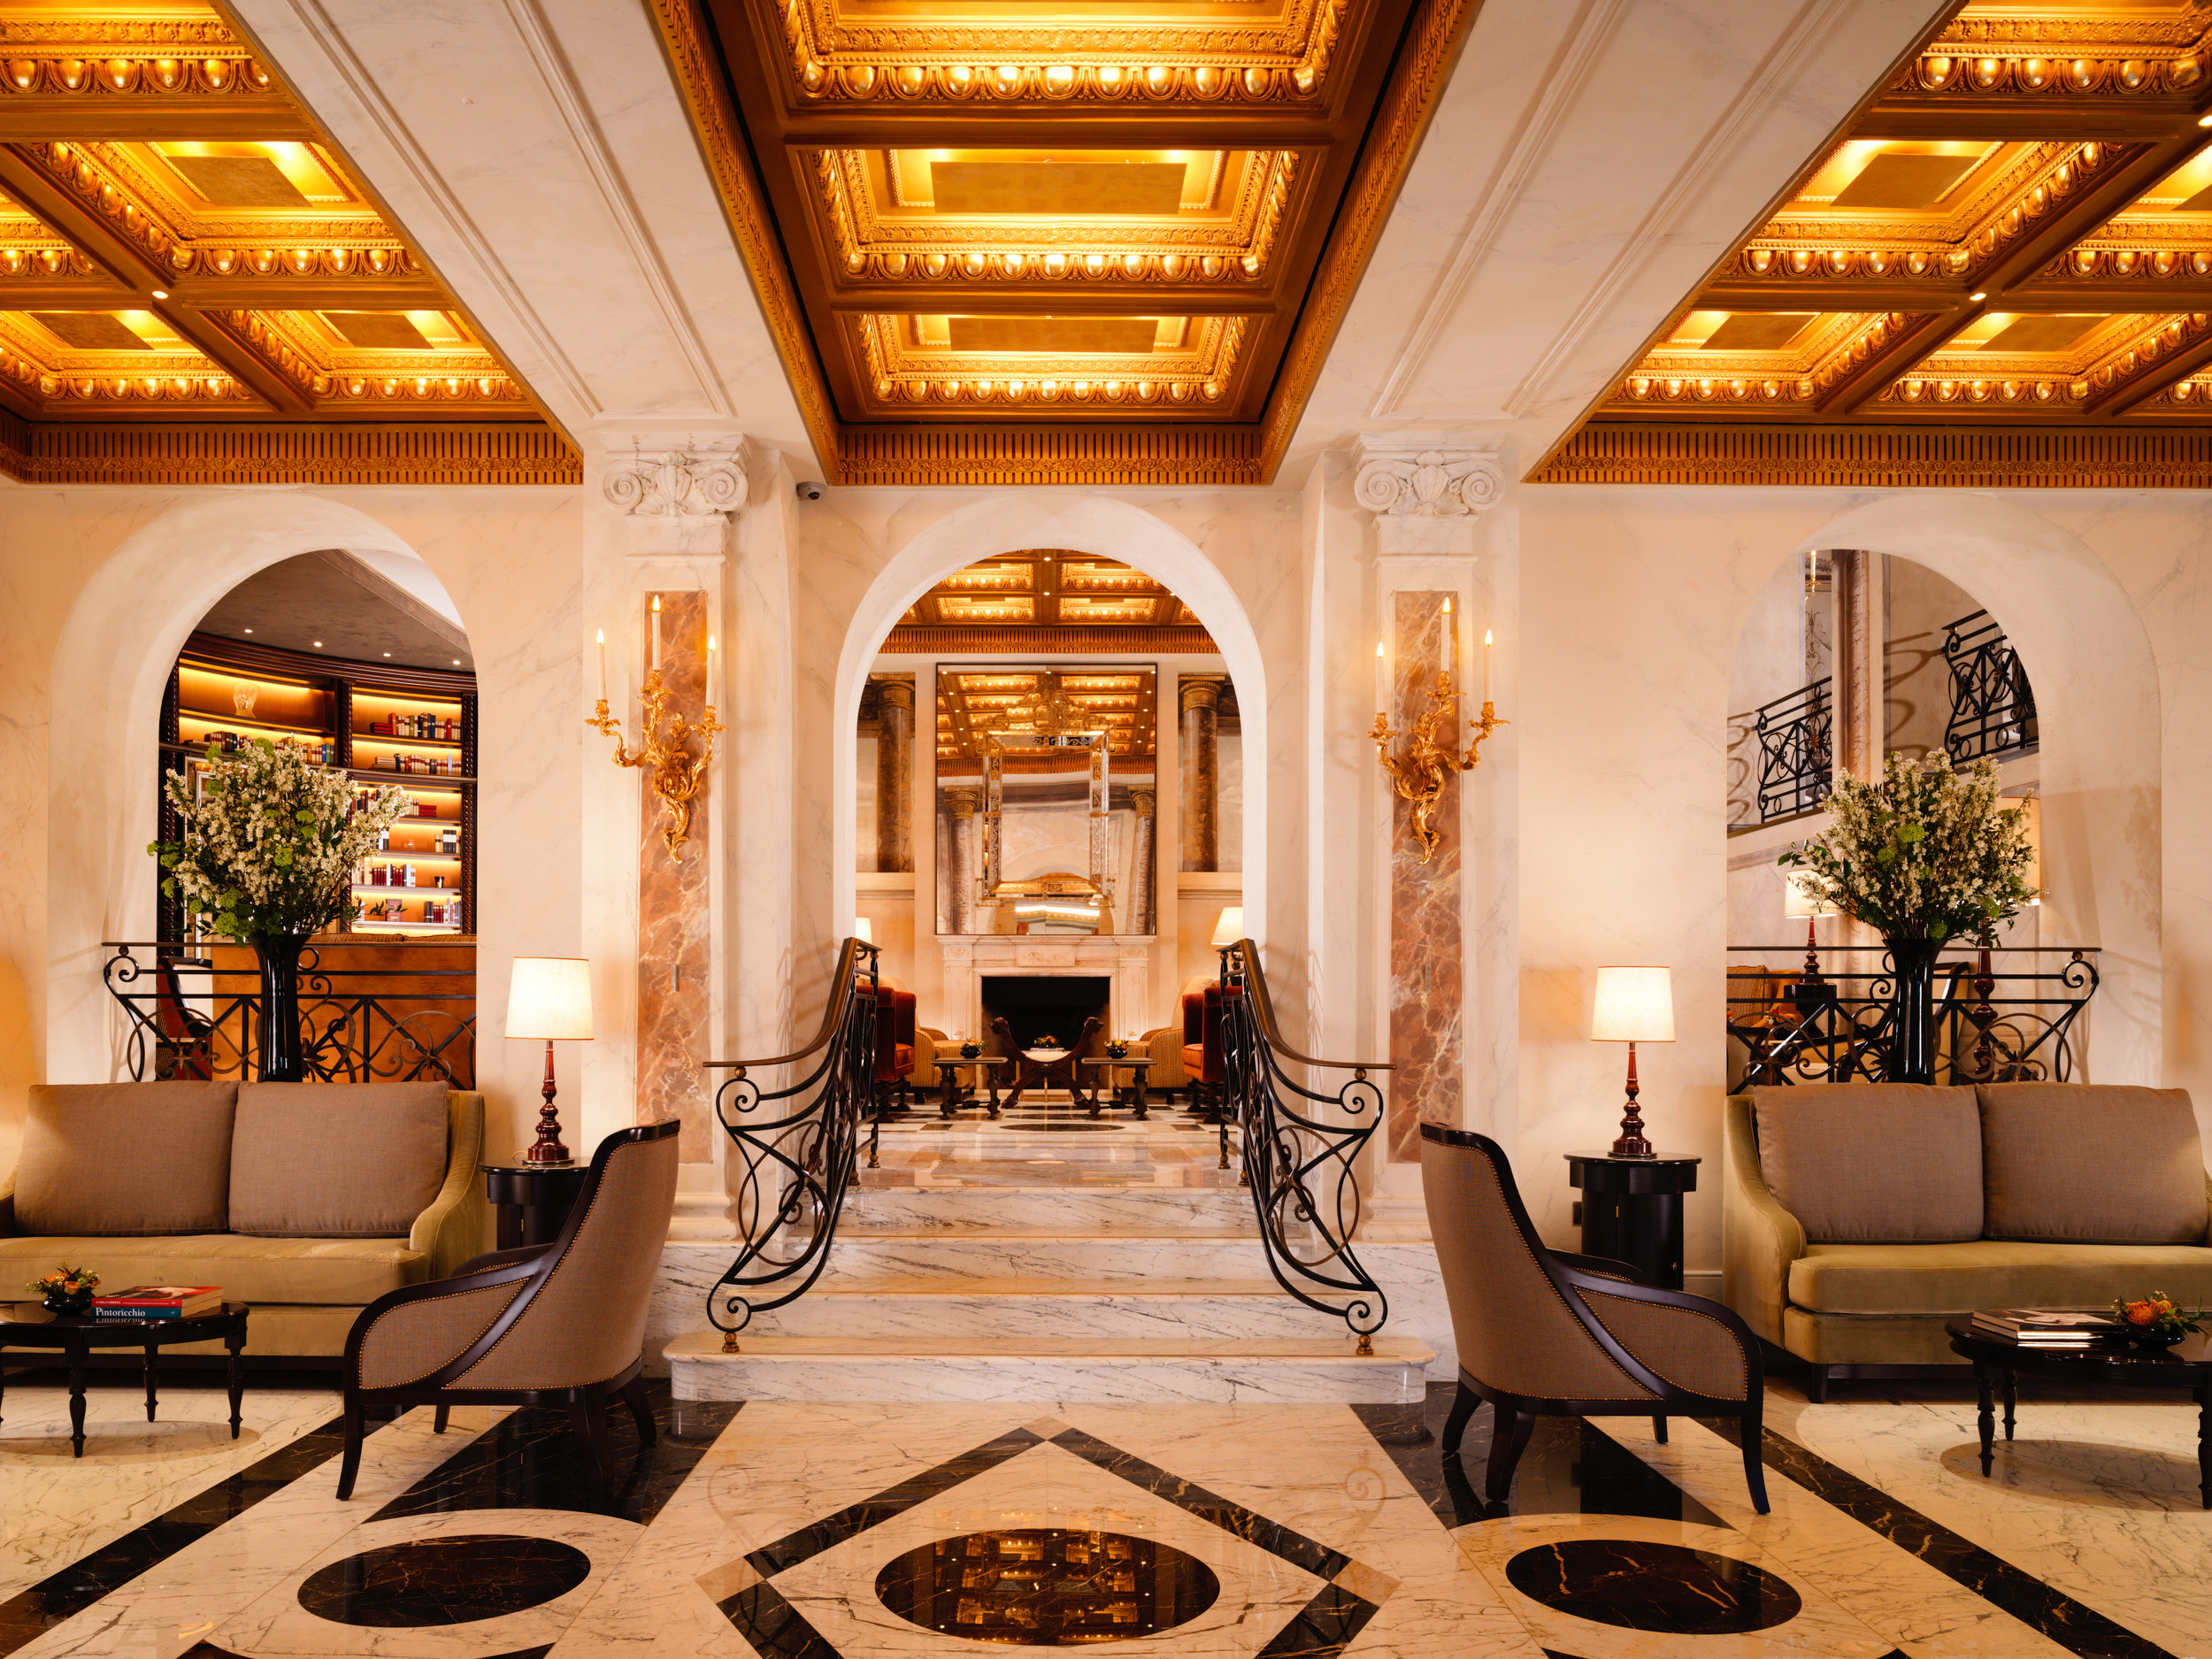 Hotel Eden_Lobby_HIGH RES.jpg